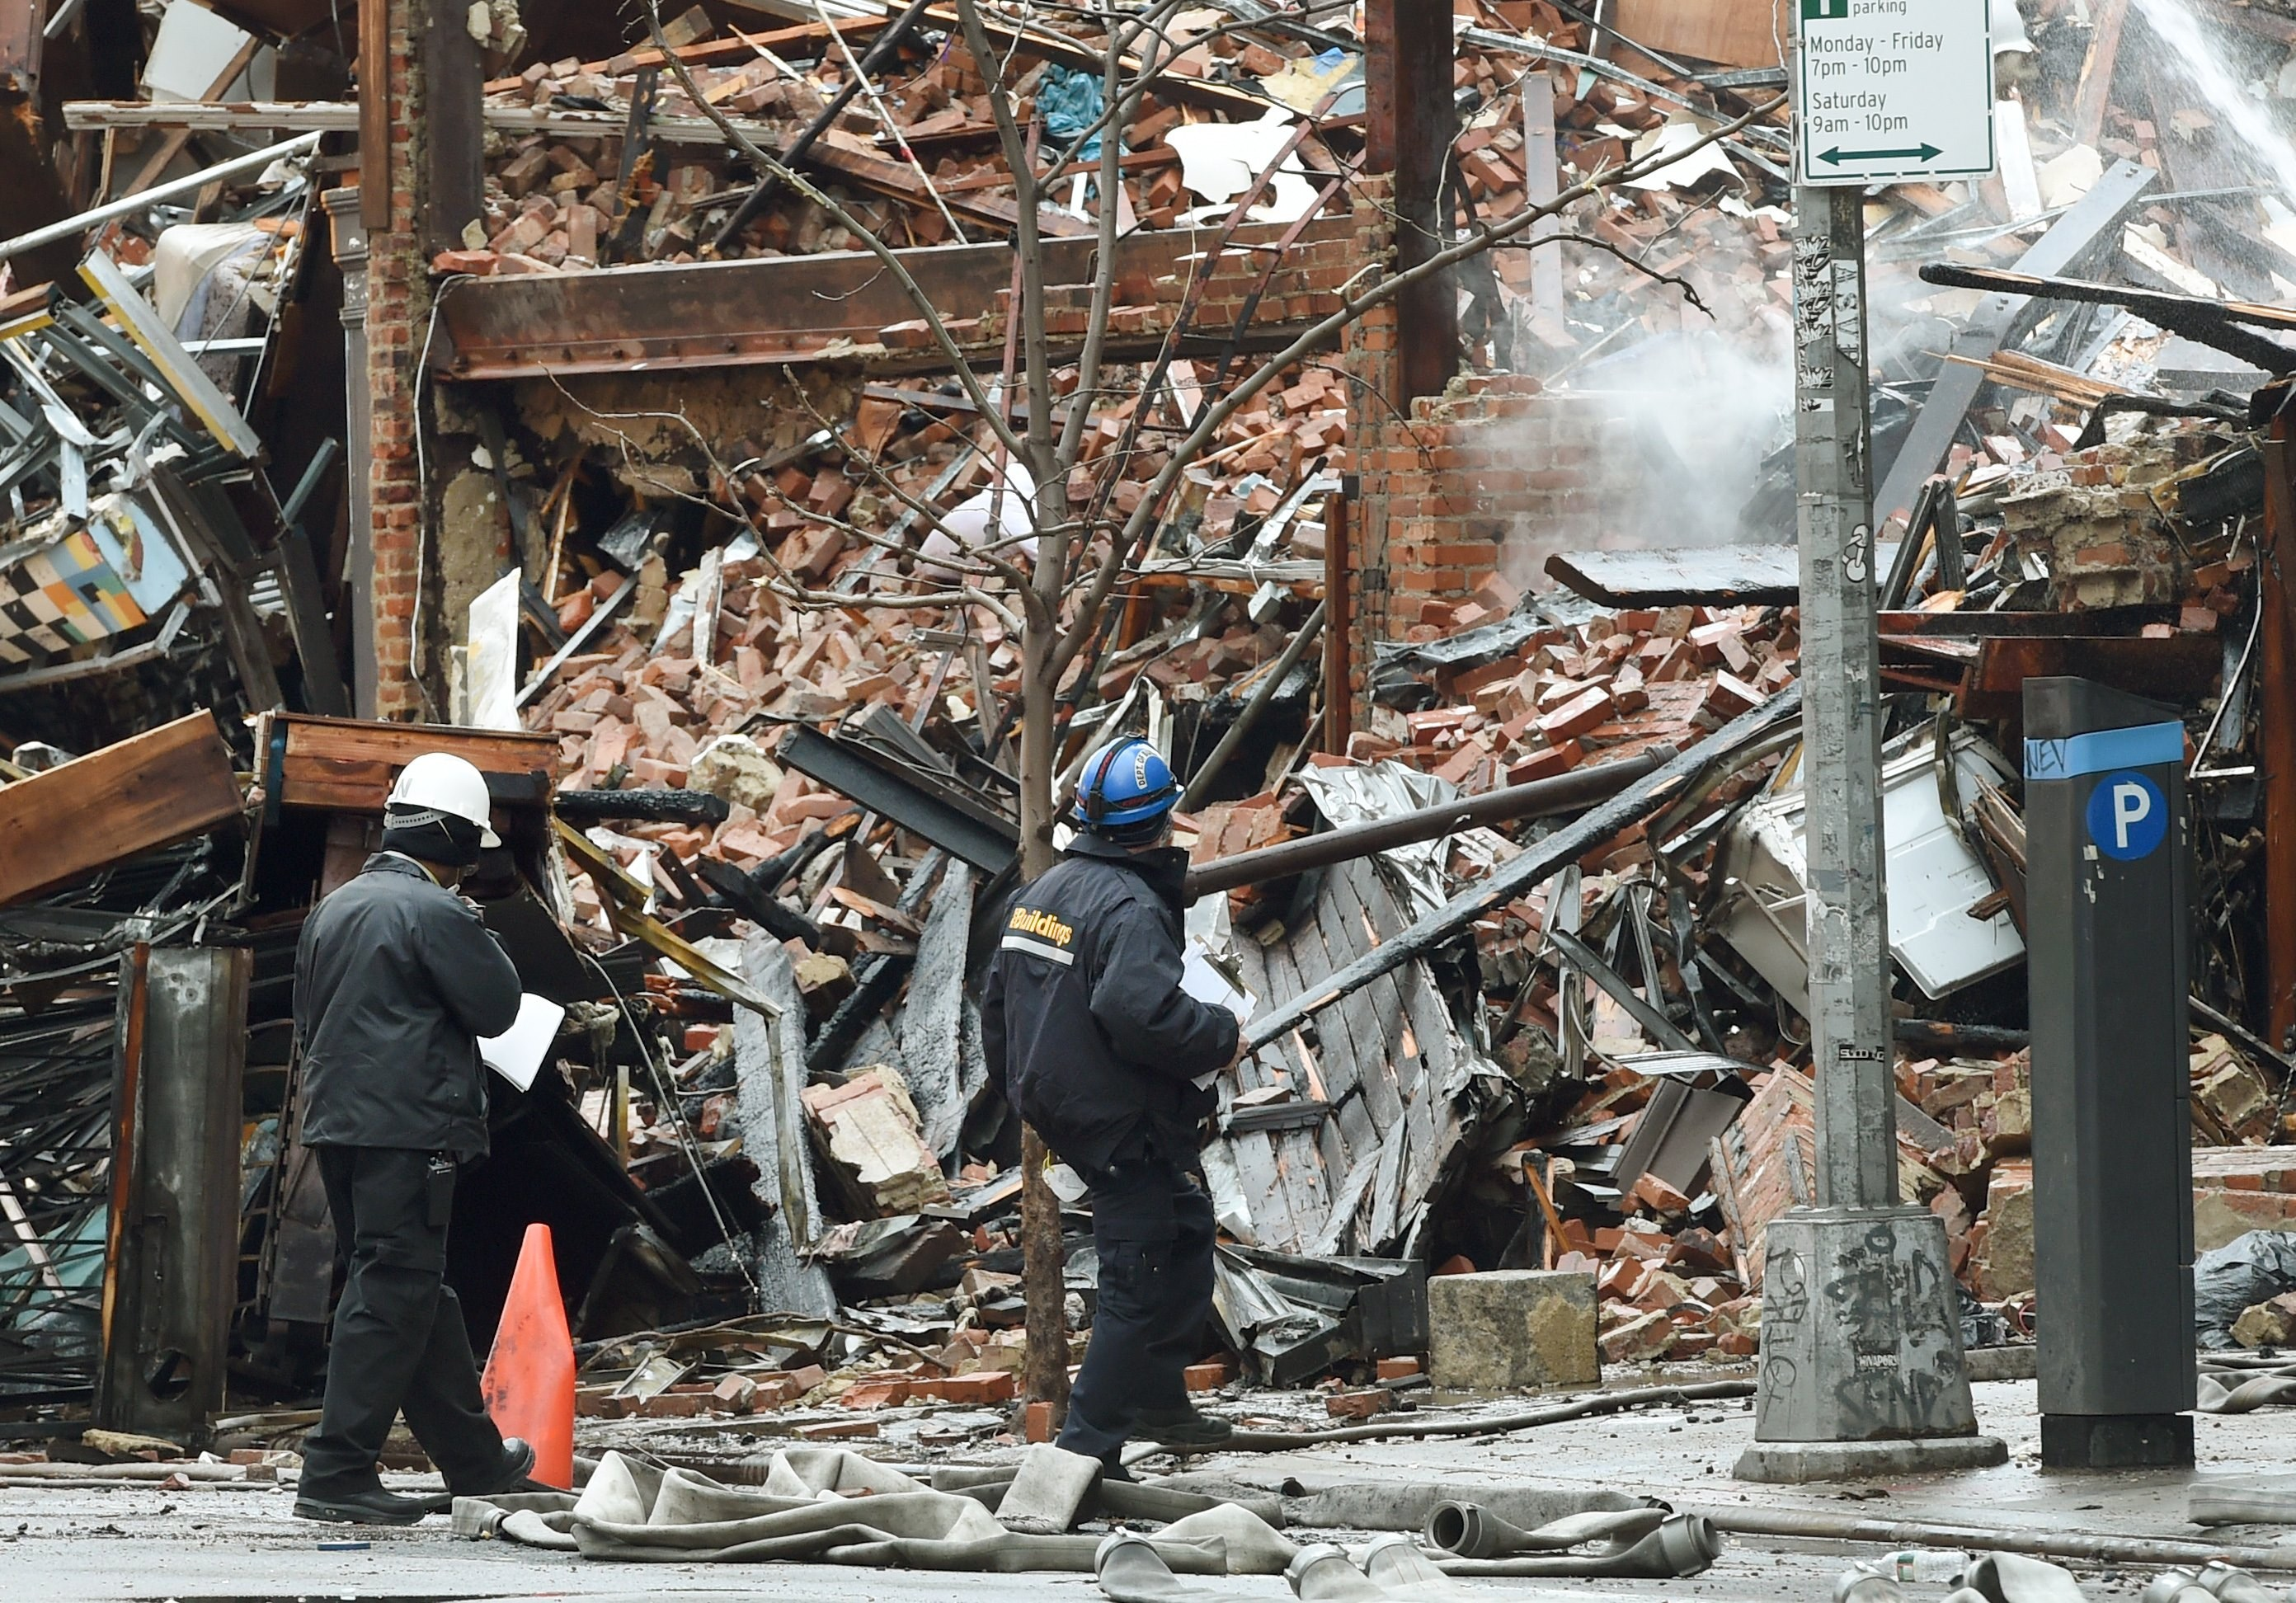 FDNY officials check debris at the site of the blast (Photo:  Timothy Clary/AFP/Getty Images).